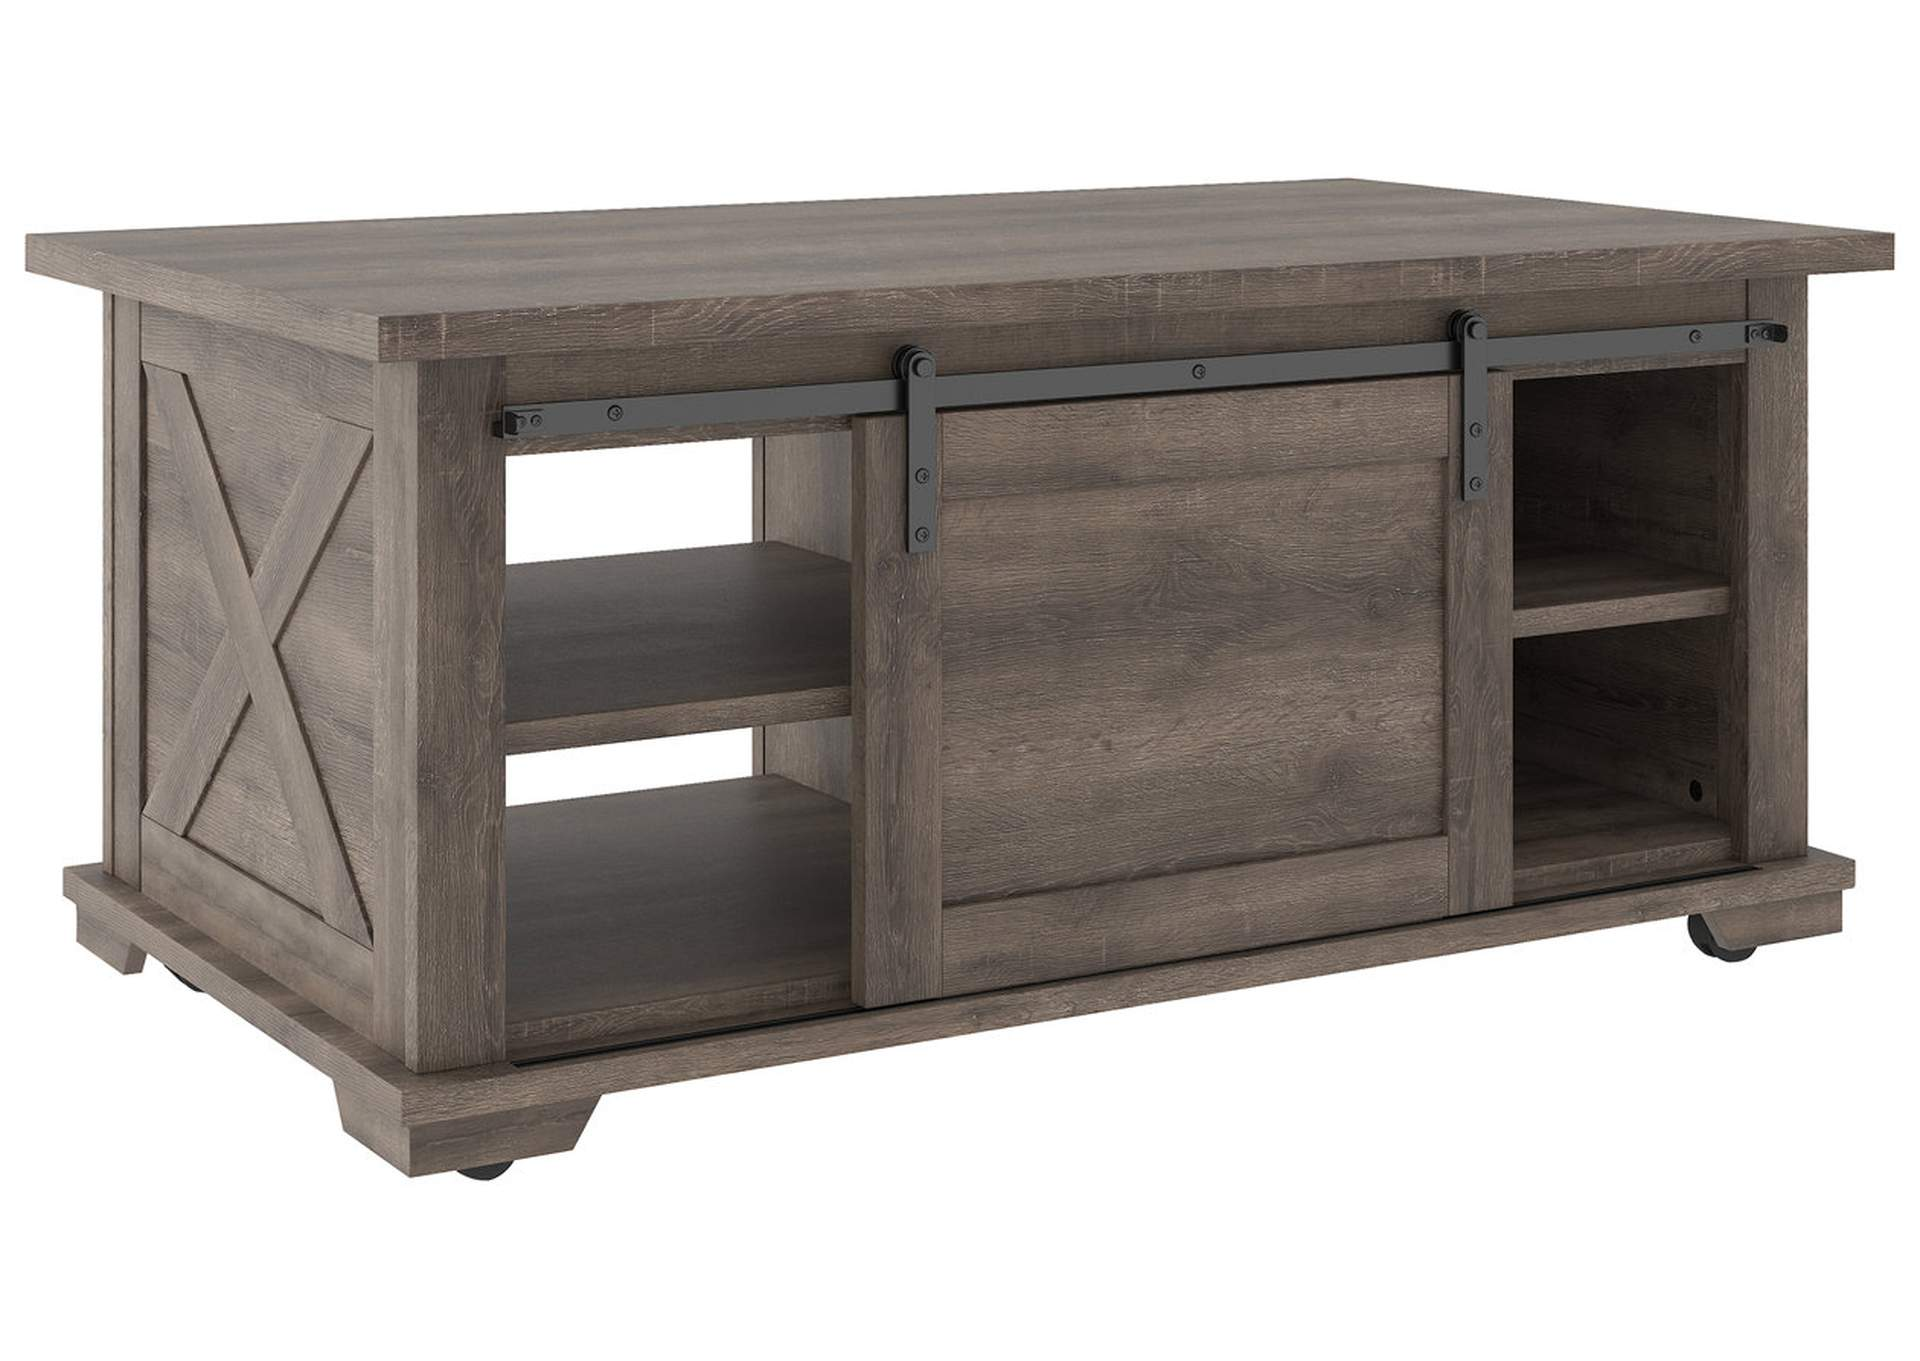 Arlenbry Coffee Table,Signature Design By Ashley